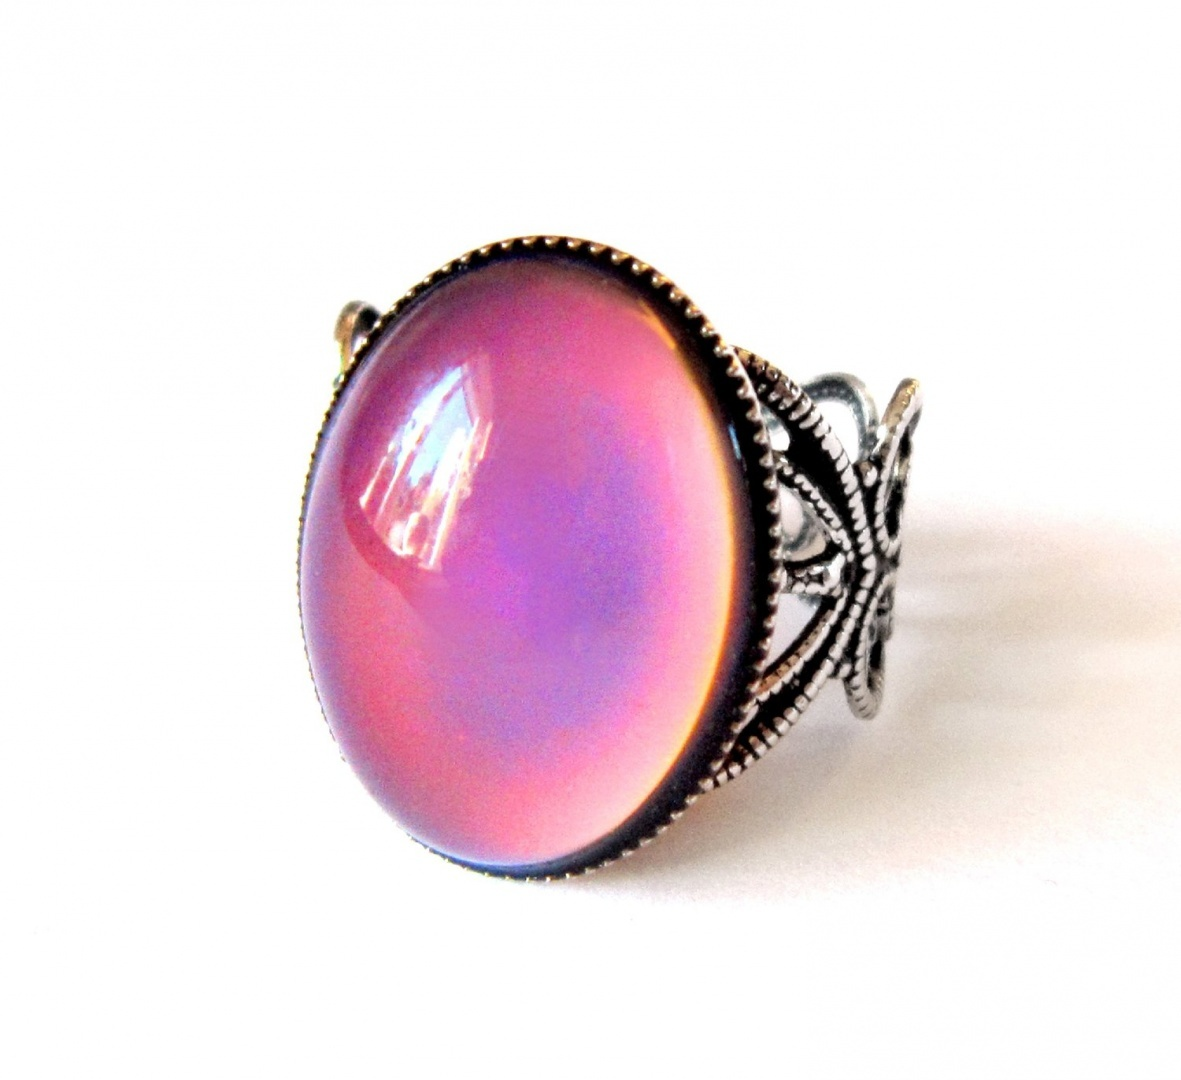 Mood Rings Jewellery: Buy Online from Fishpond.co.nz